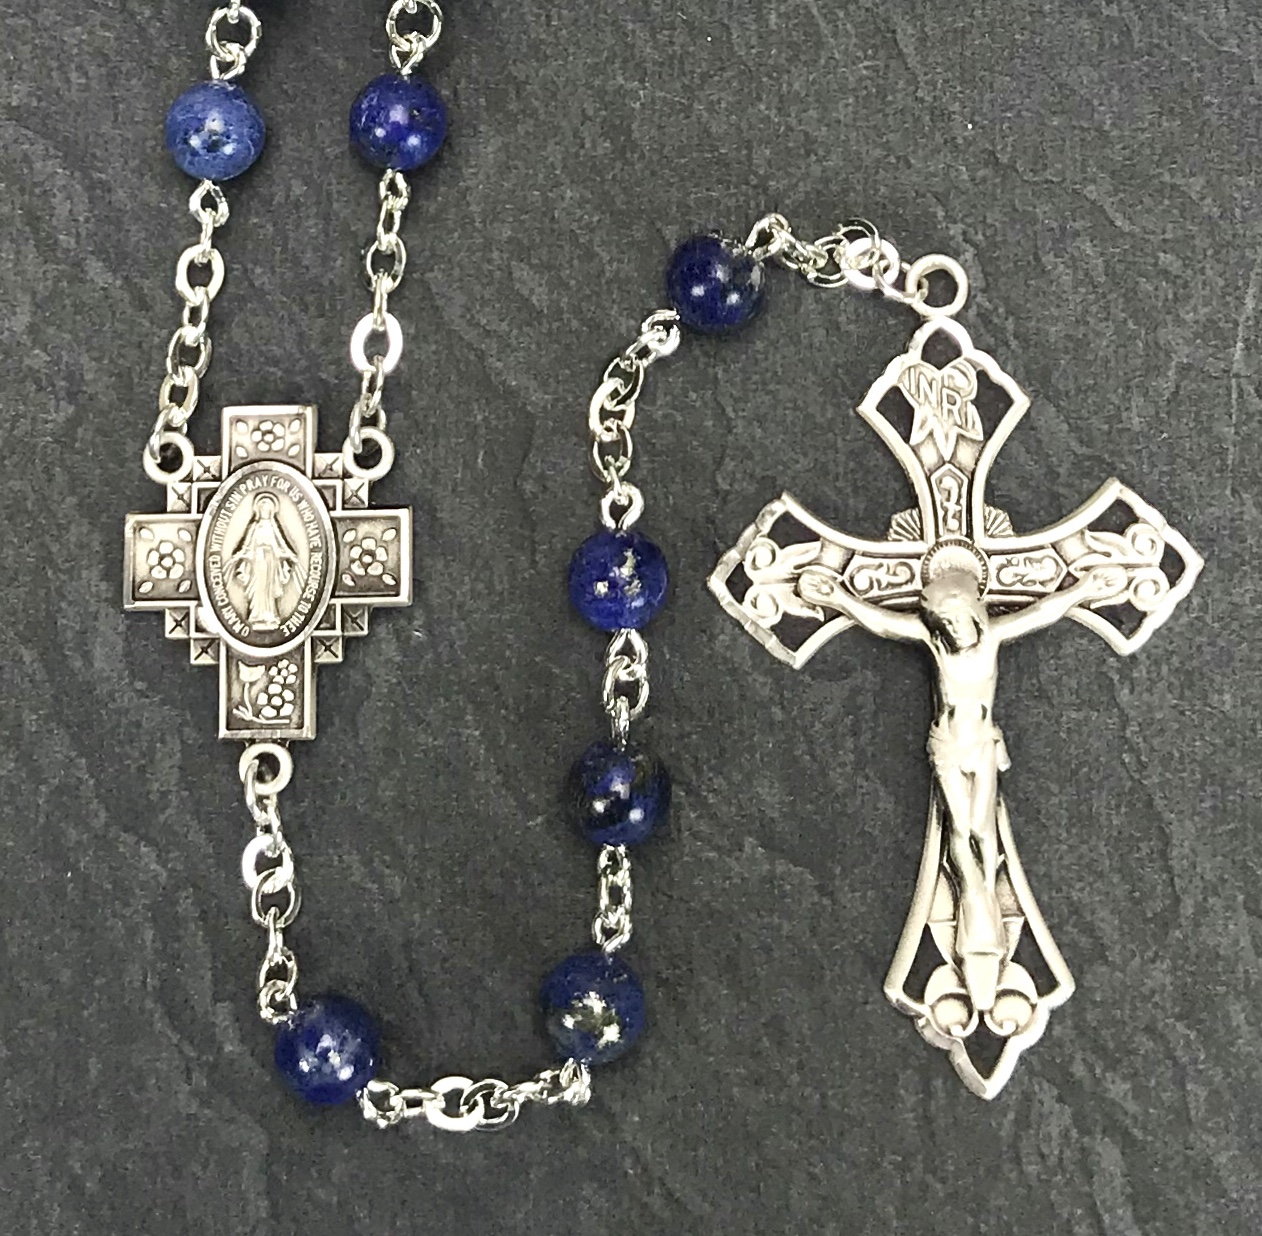 6mm ROUND LAPIS GEMSTONE ALL STERLING SILVER EXCELSIOR ROSARY